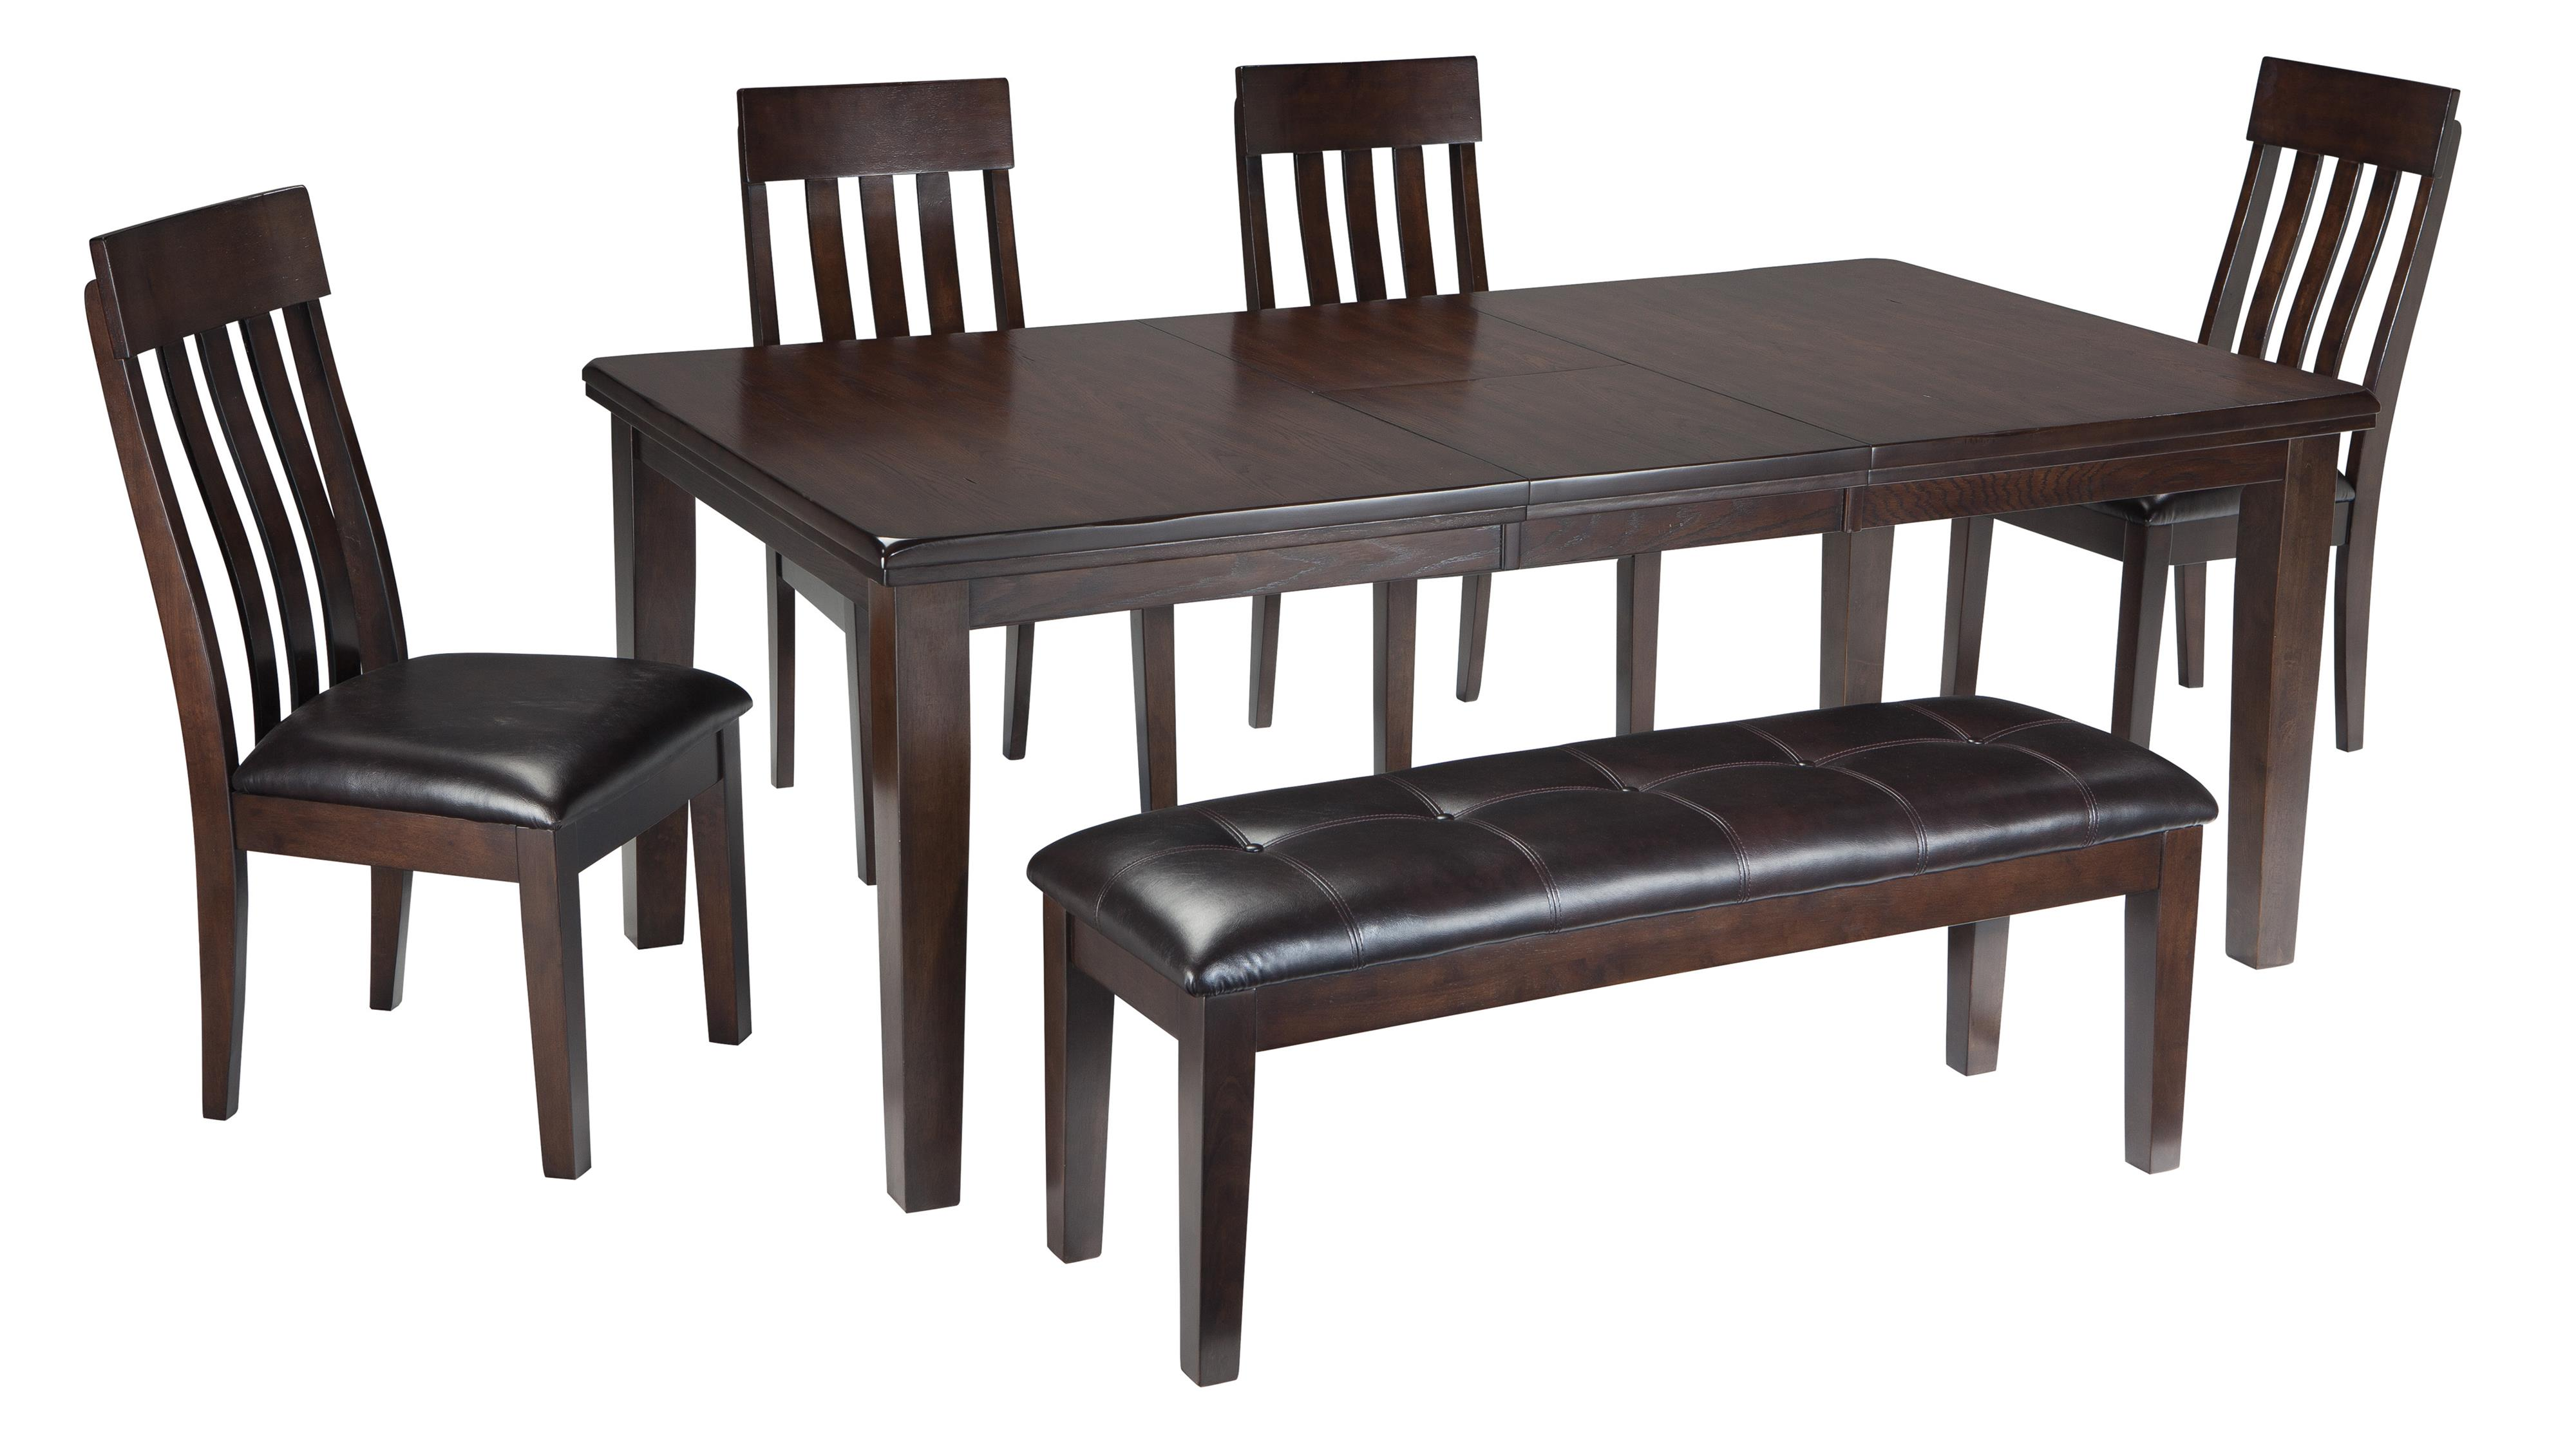 Signature Design By Ashley Haddigan 6 Piece Rectangular Dining Room